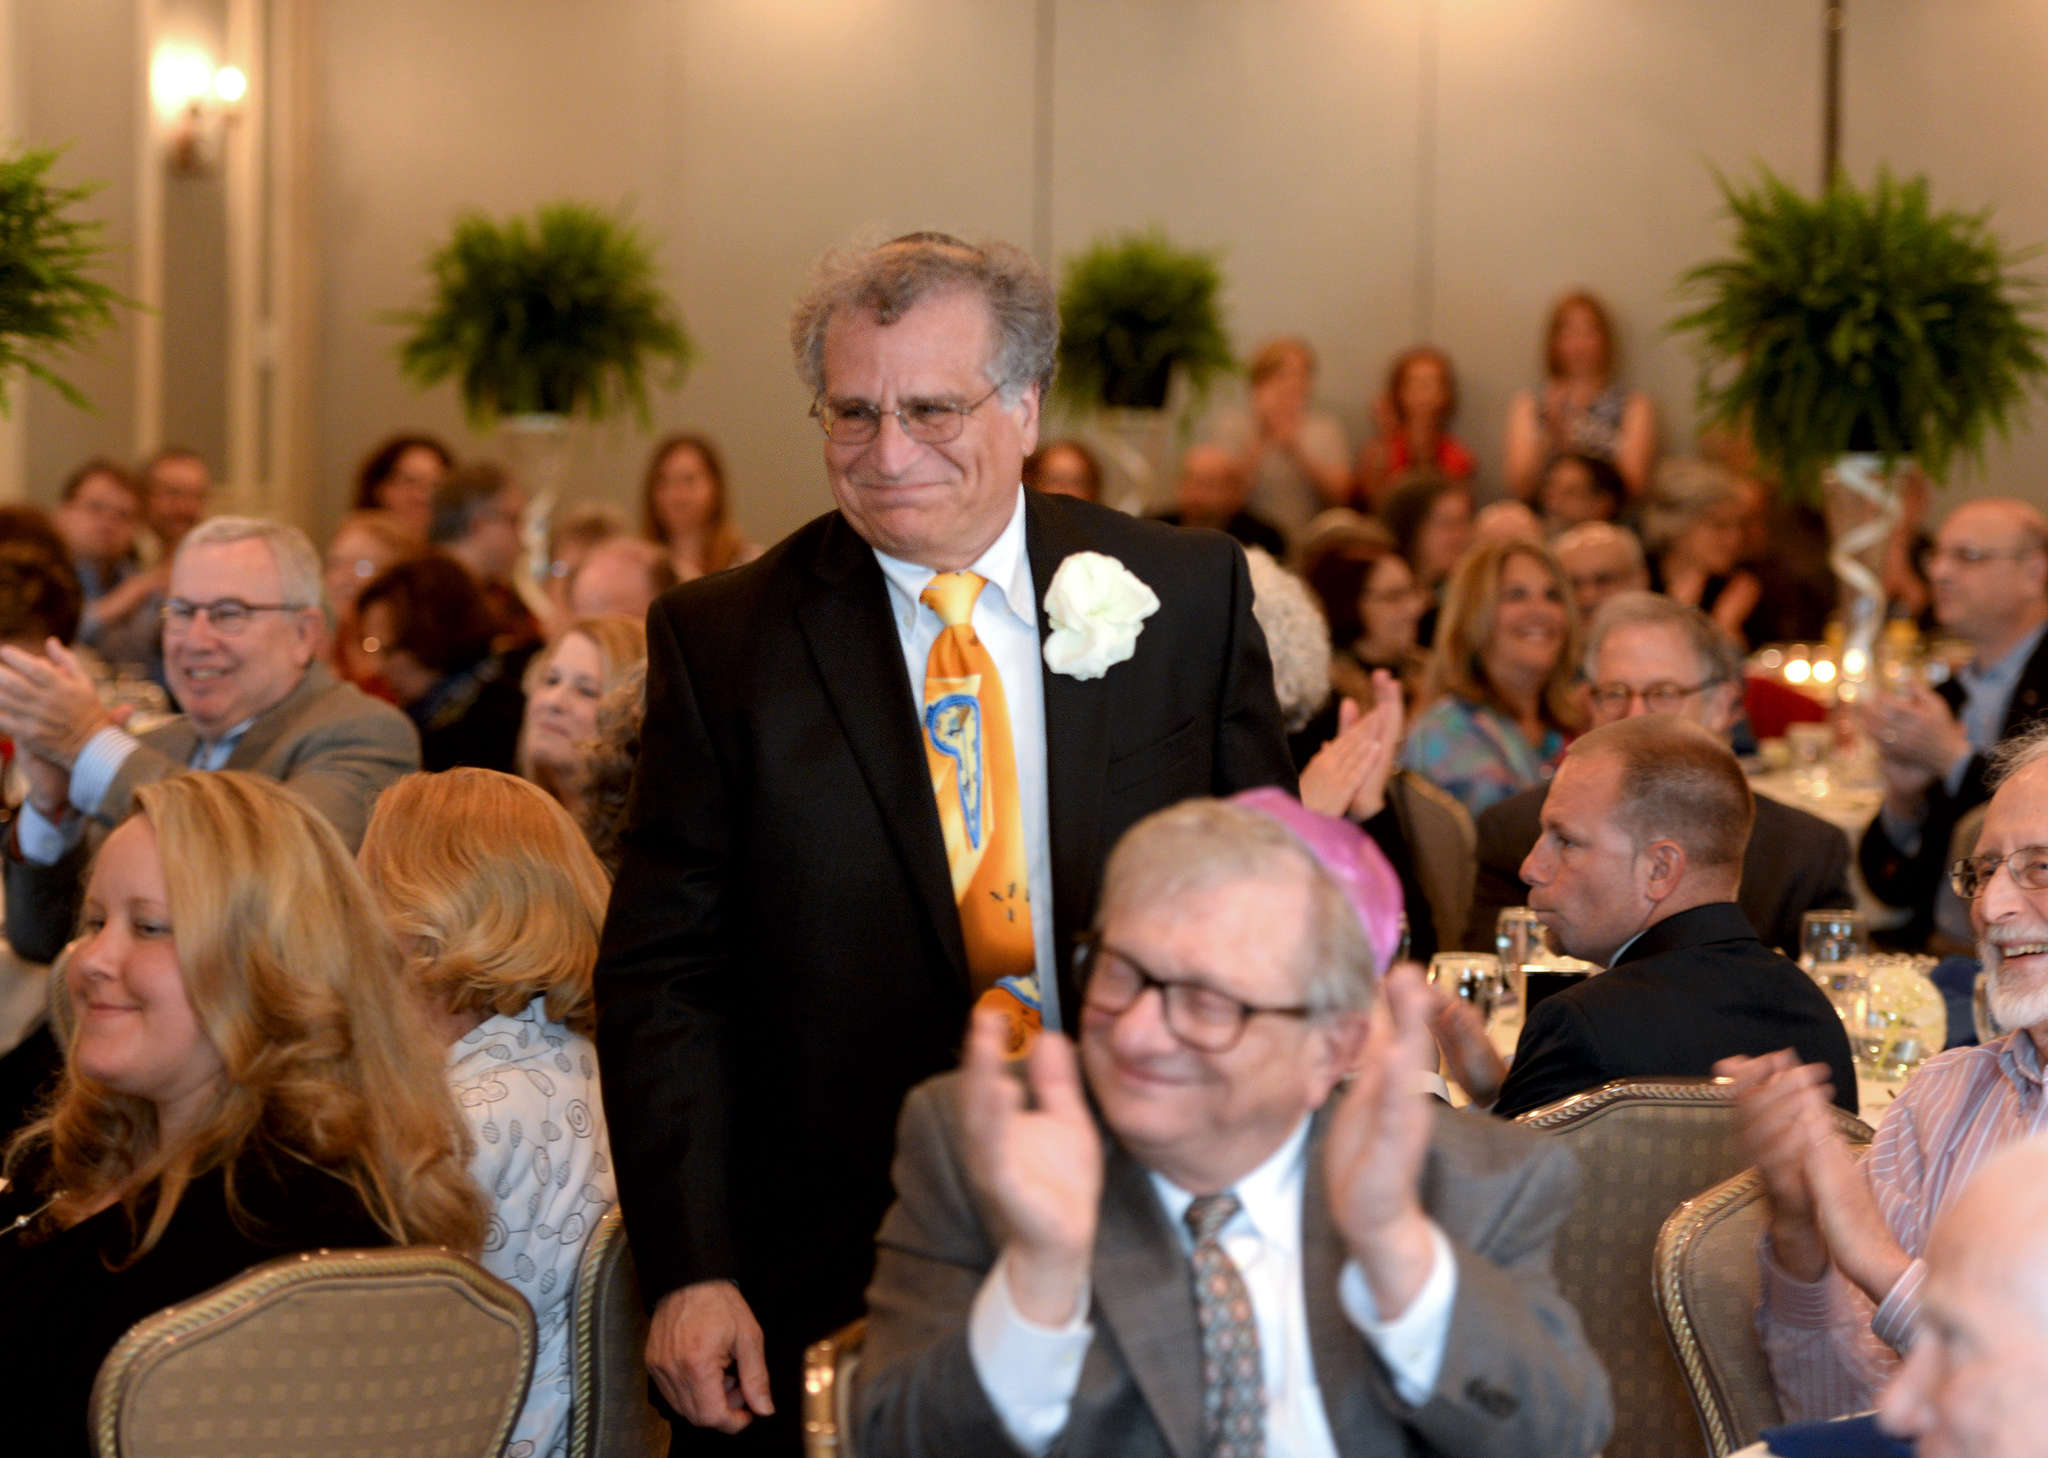 Rabbi Gary Gans, who will retire Aug. 1, attends the brunch his Marlton congregation hosted. He will serve as rabbi emeritus at Congregation Beth Tikvah for two years after his retirement.